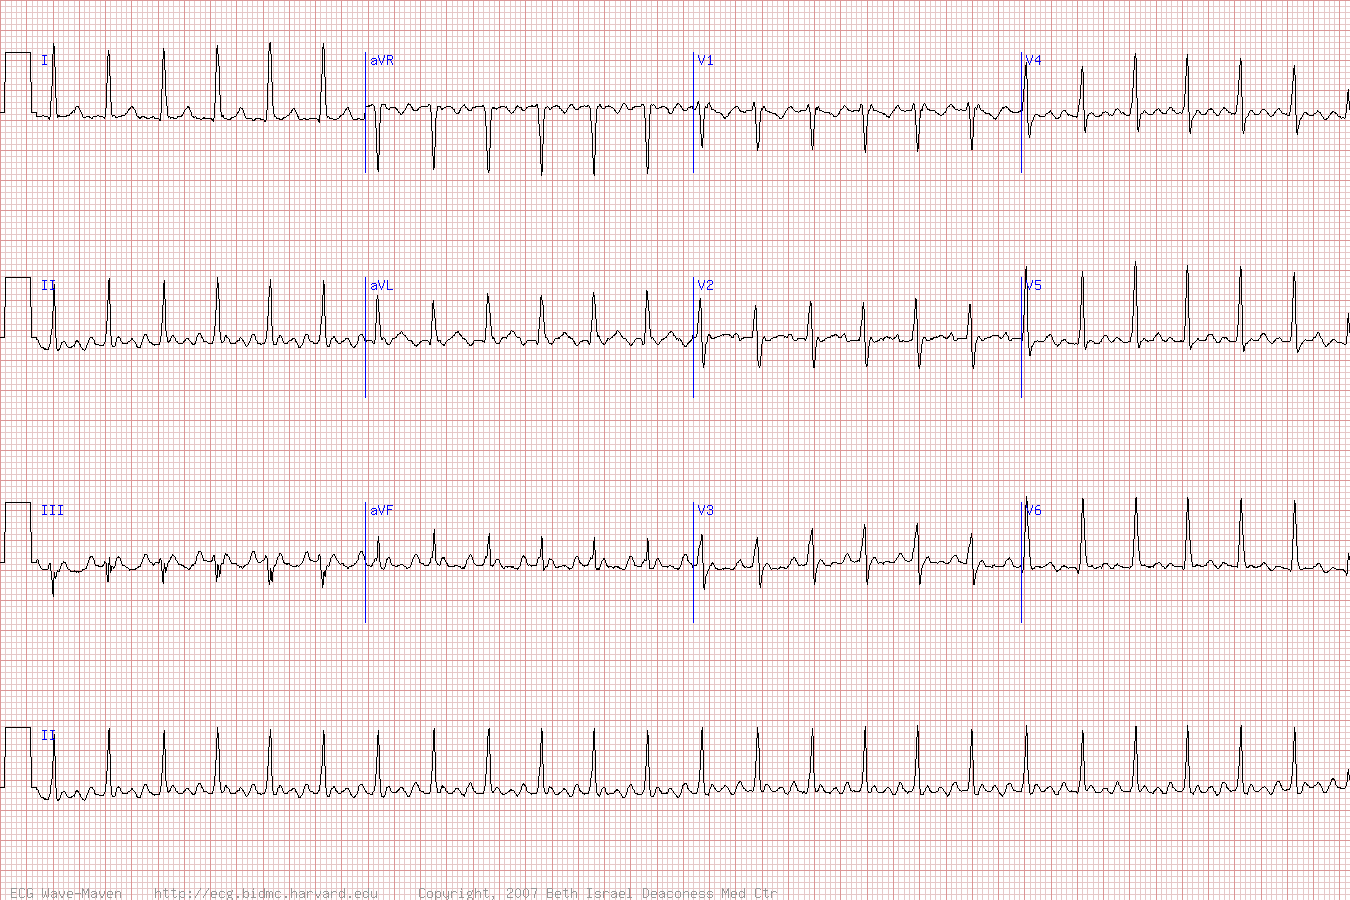 Atrial Flutter with 2 to 1 Block